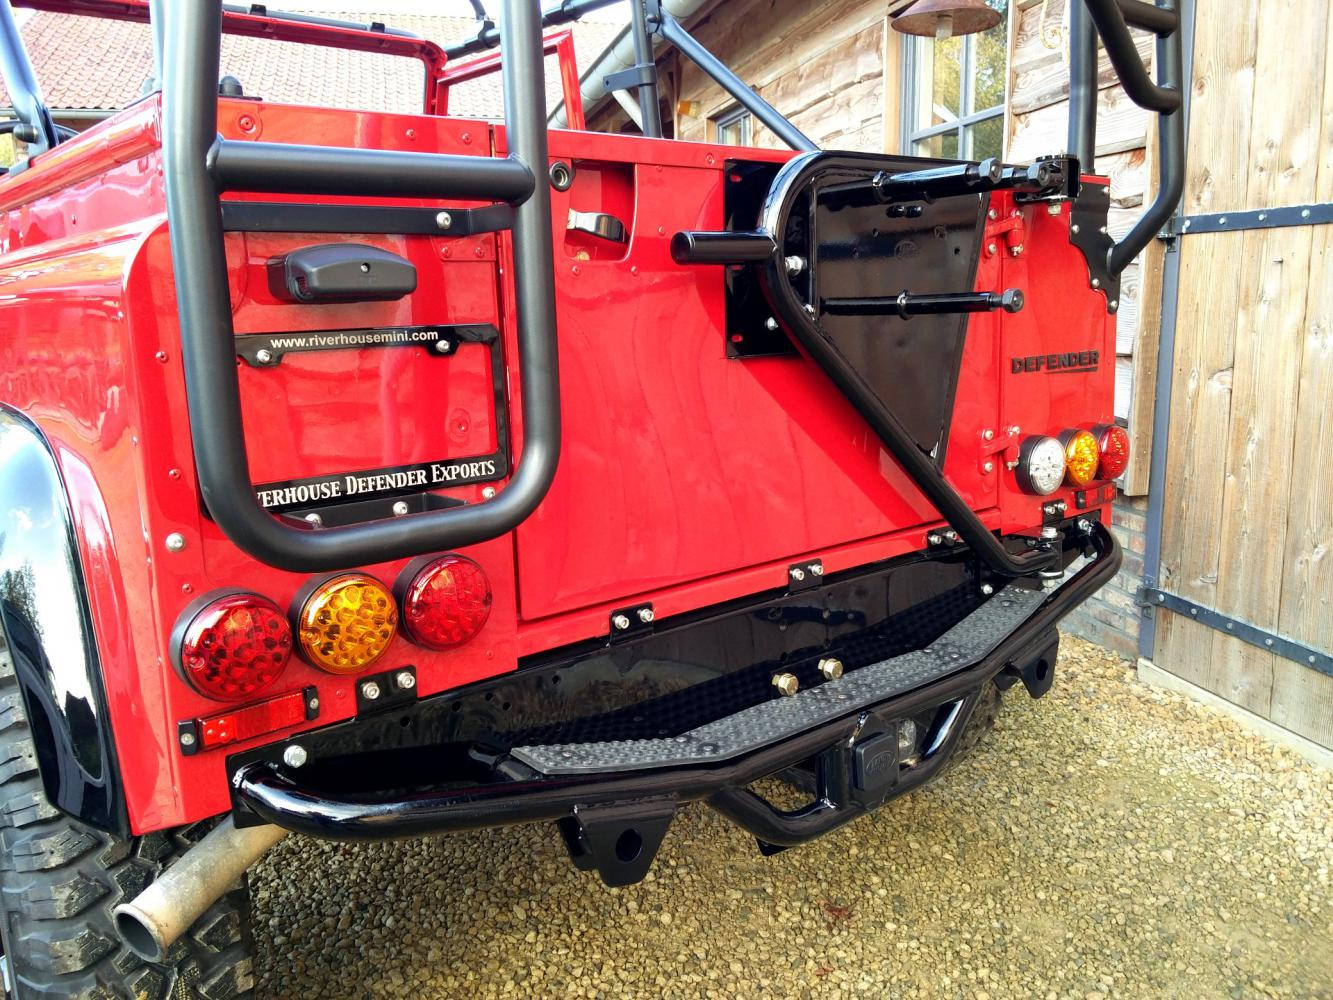 Click image for larger version  Name:1992 LR LHD Defender 90 Red 200 Tdi A day 10 rear close.jpg Views:172 Size:265.2 KB ID:322401